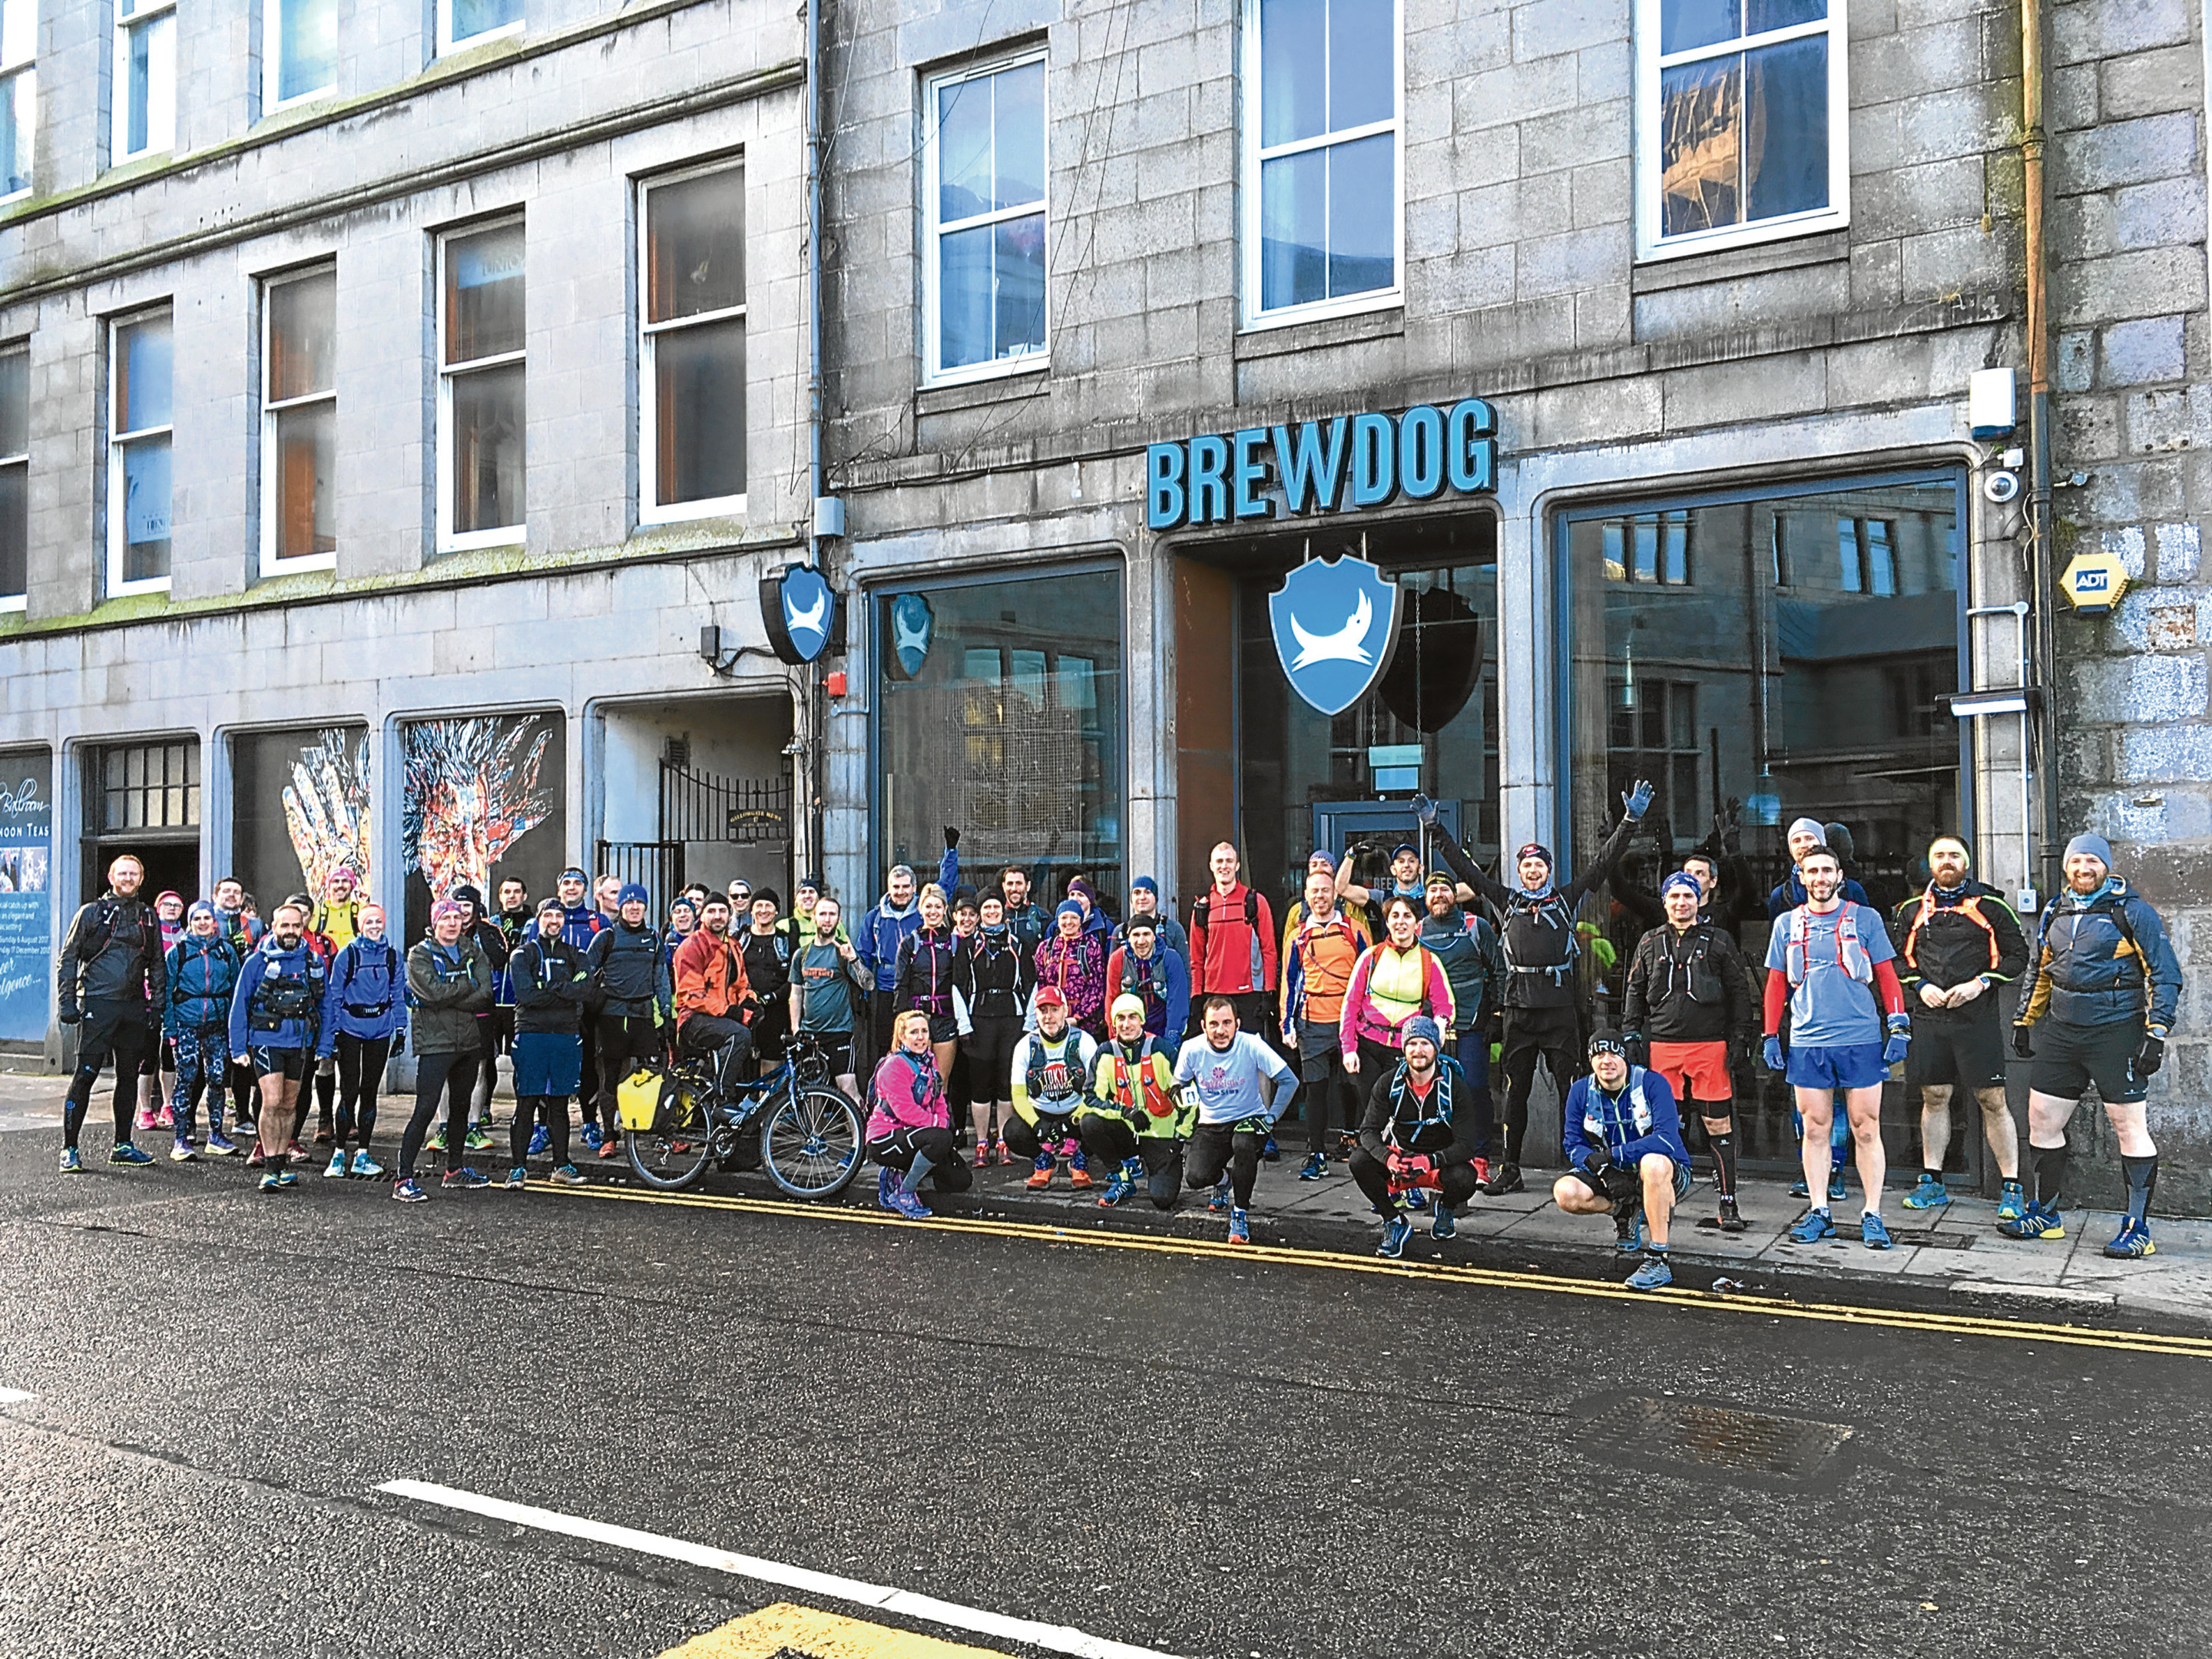 The walkers outside the BrewDog bar on Gallowgate.